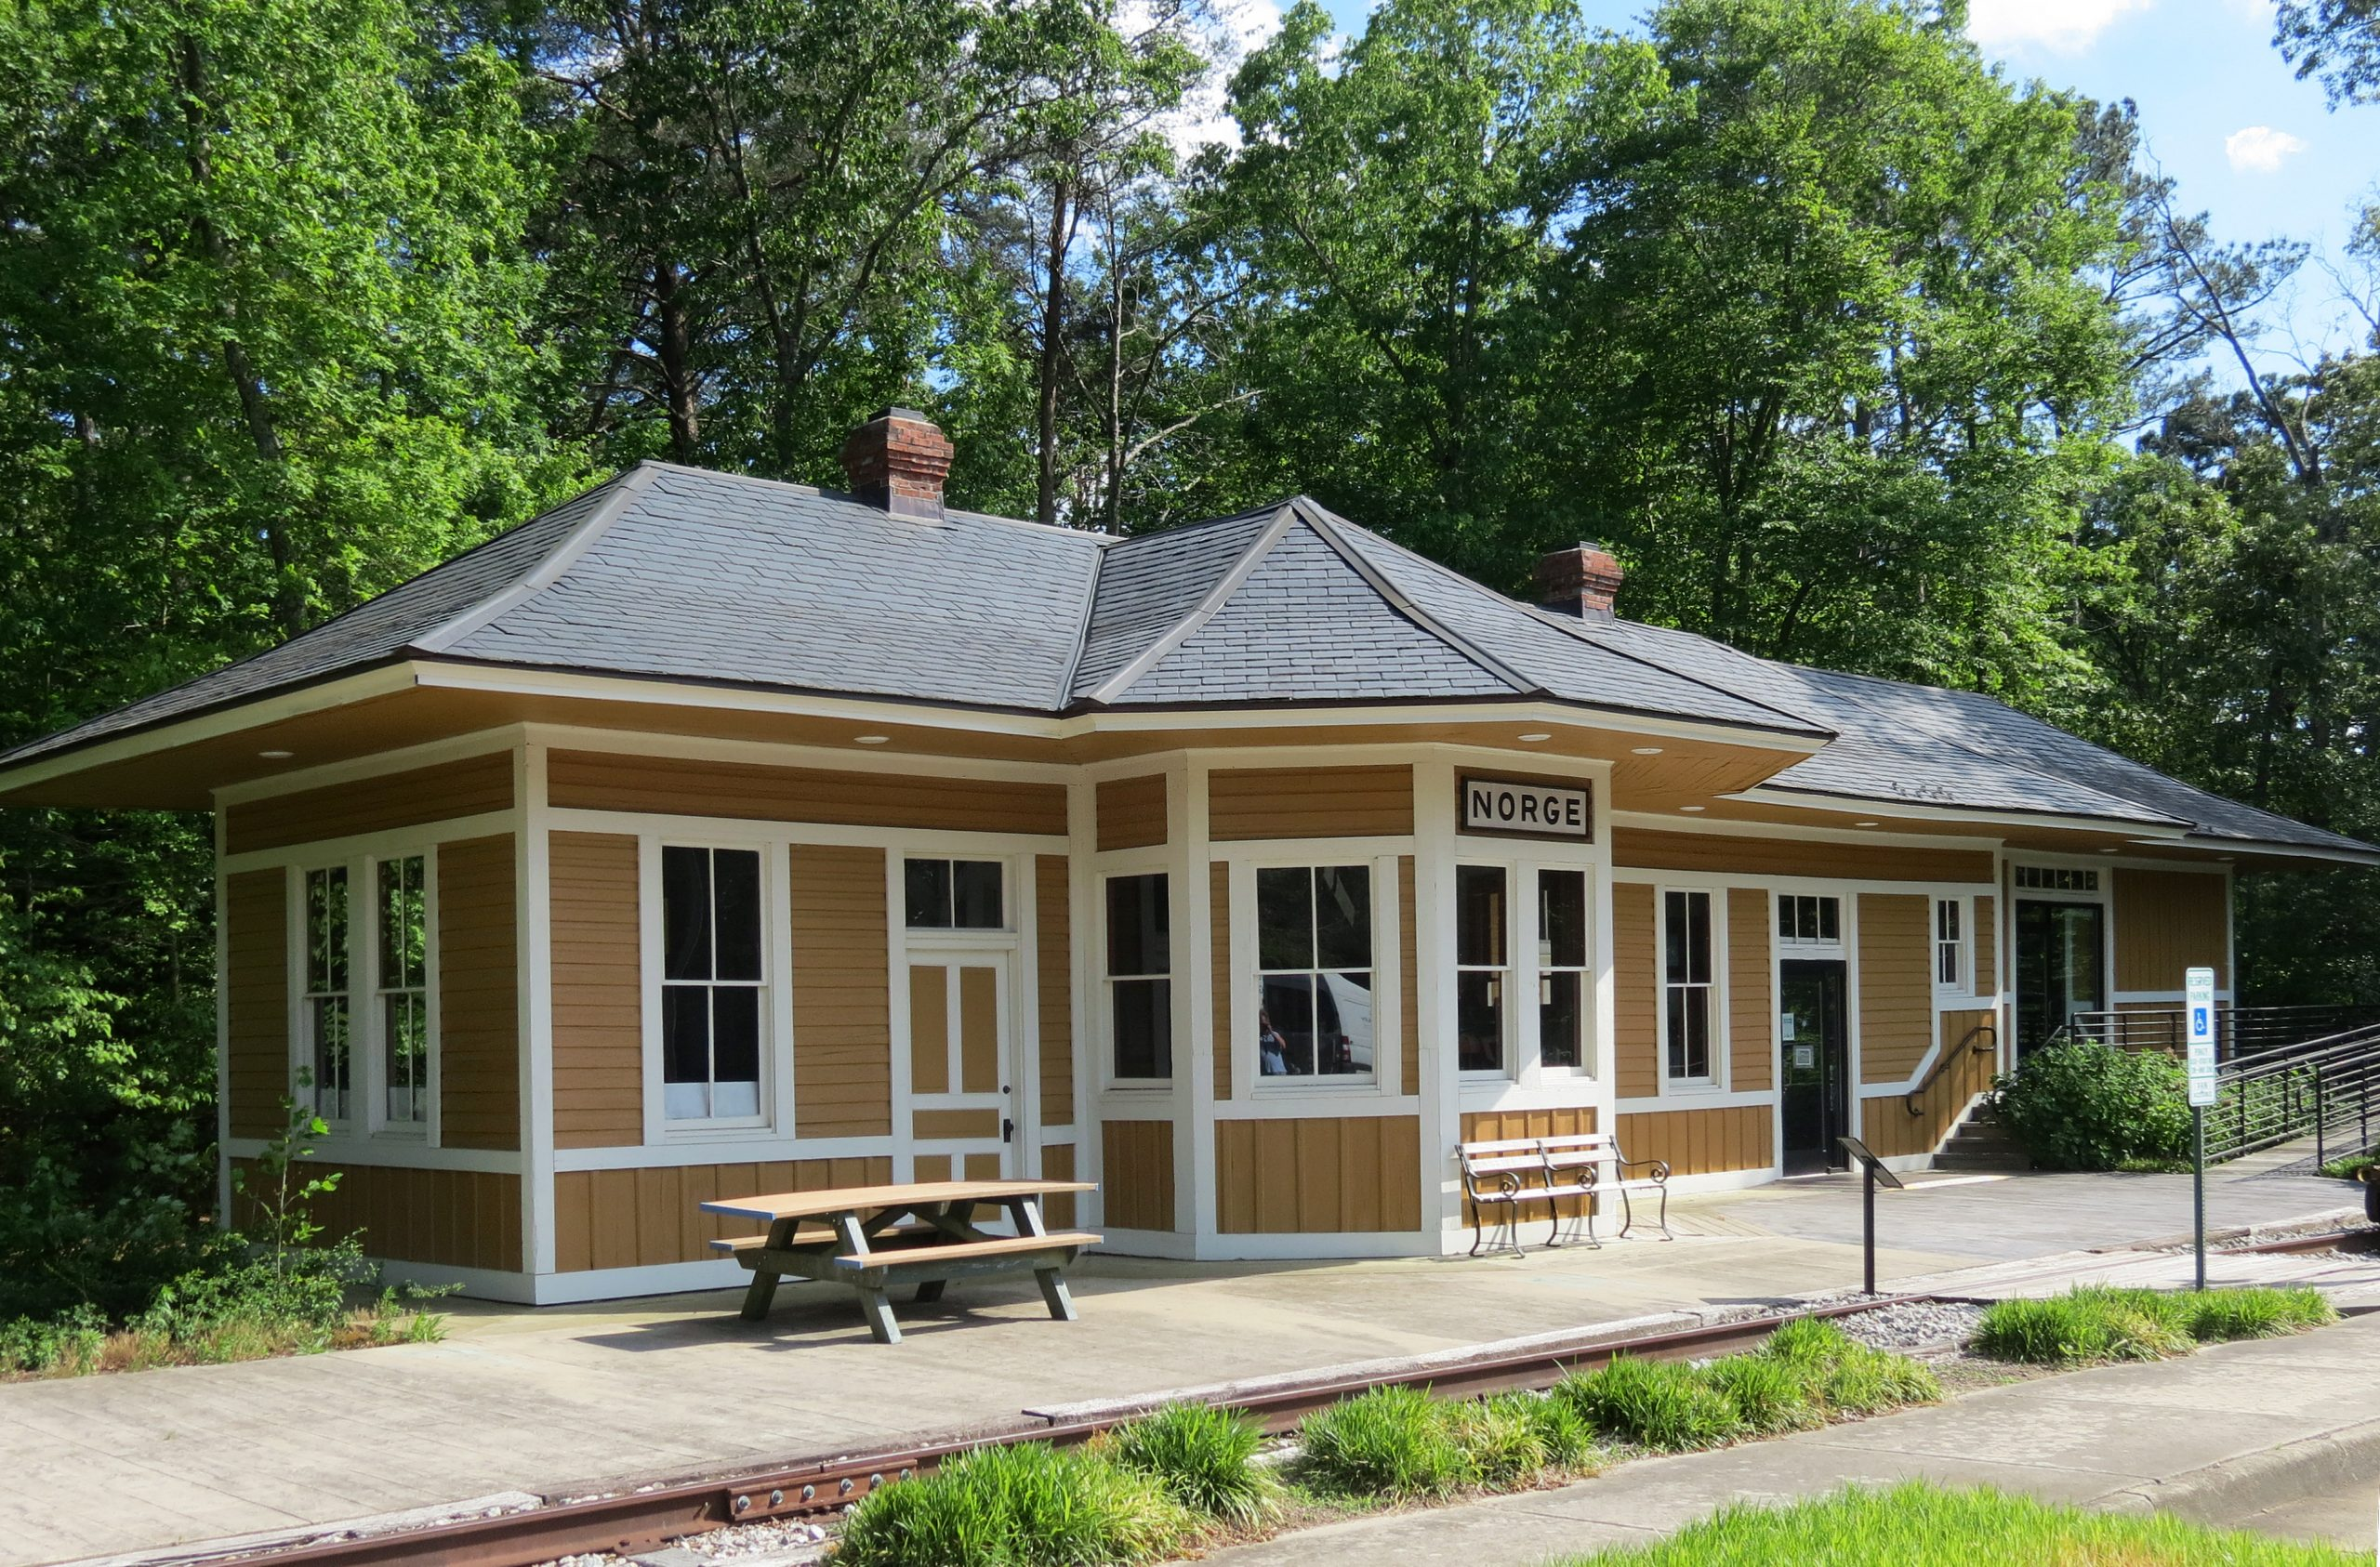 Norge Train Depot